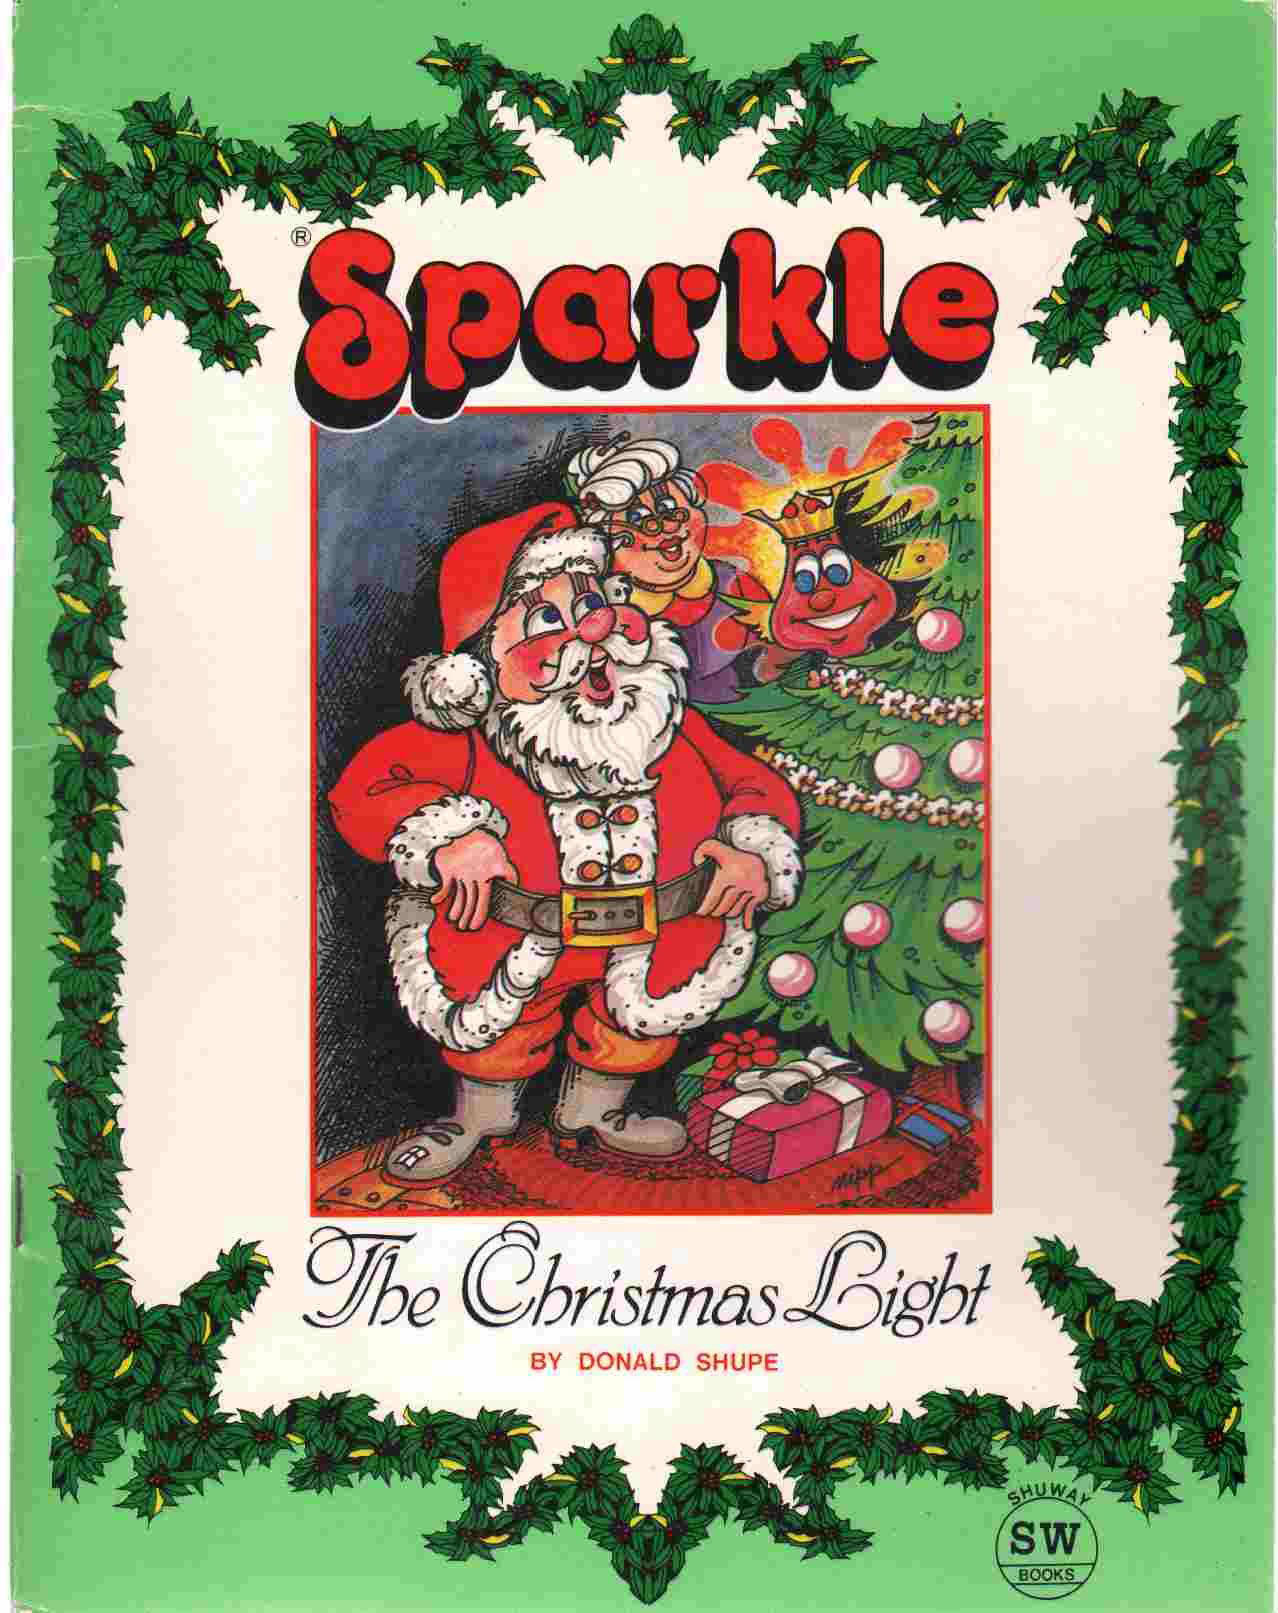 The Sparkle book was created as part of a package with the light.